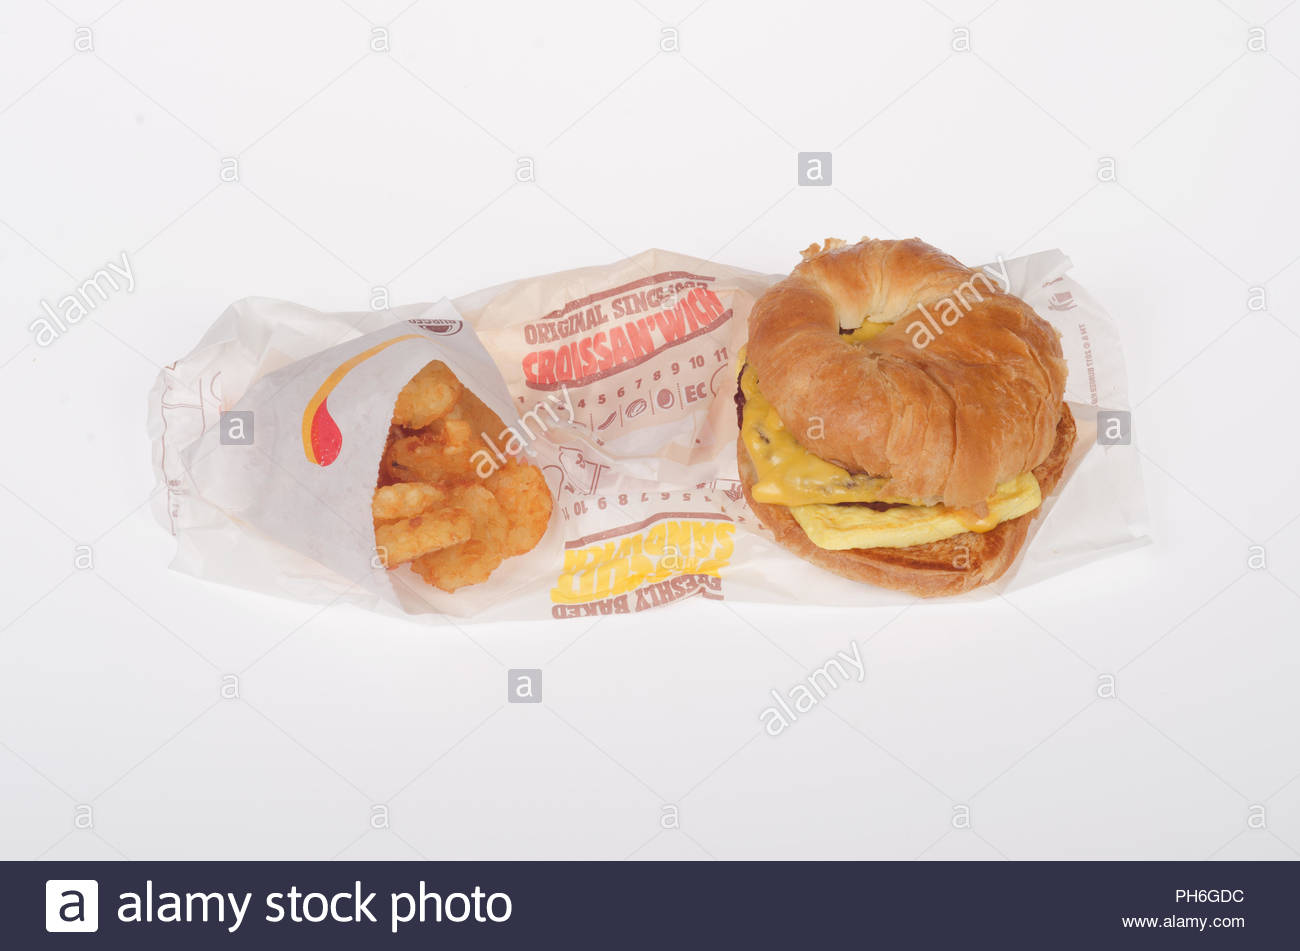 Burger King Sausage and Cheese Croissan'wich and hash browns breakfast meal with wrappers on white background - Stock Image